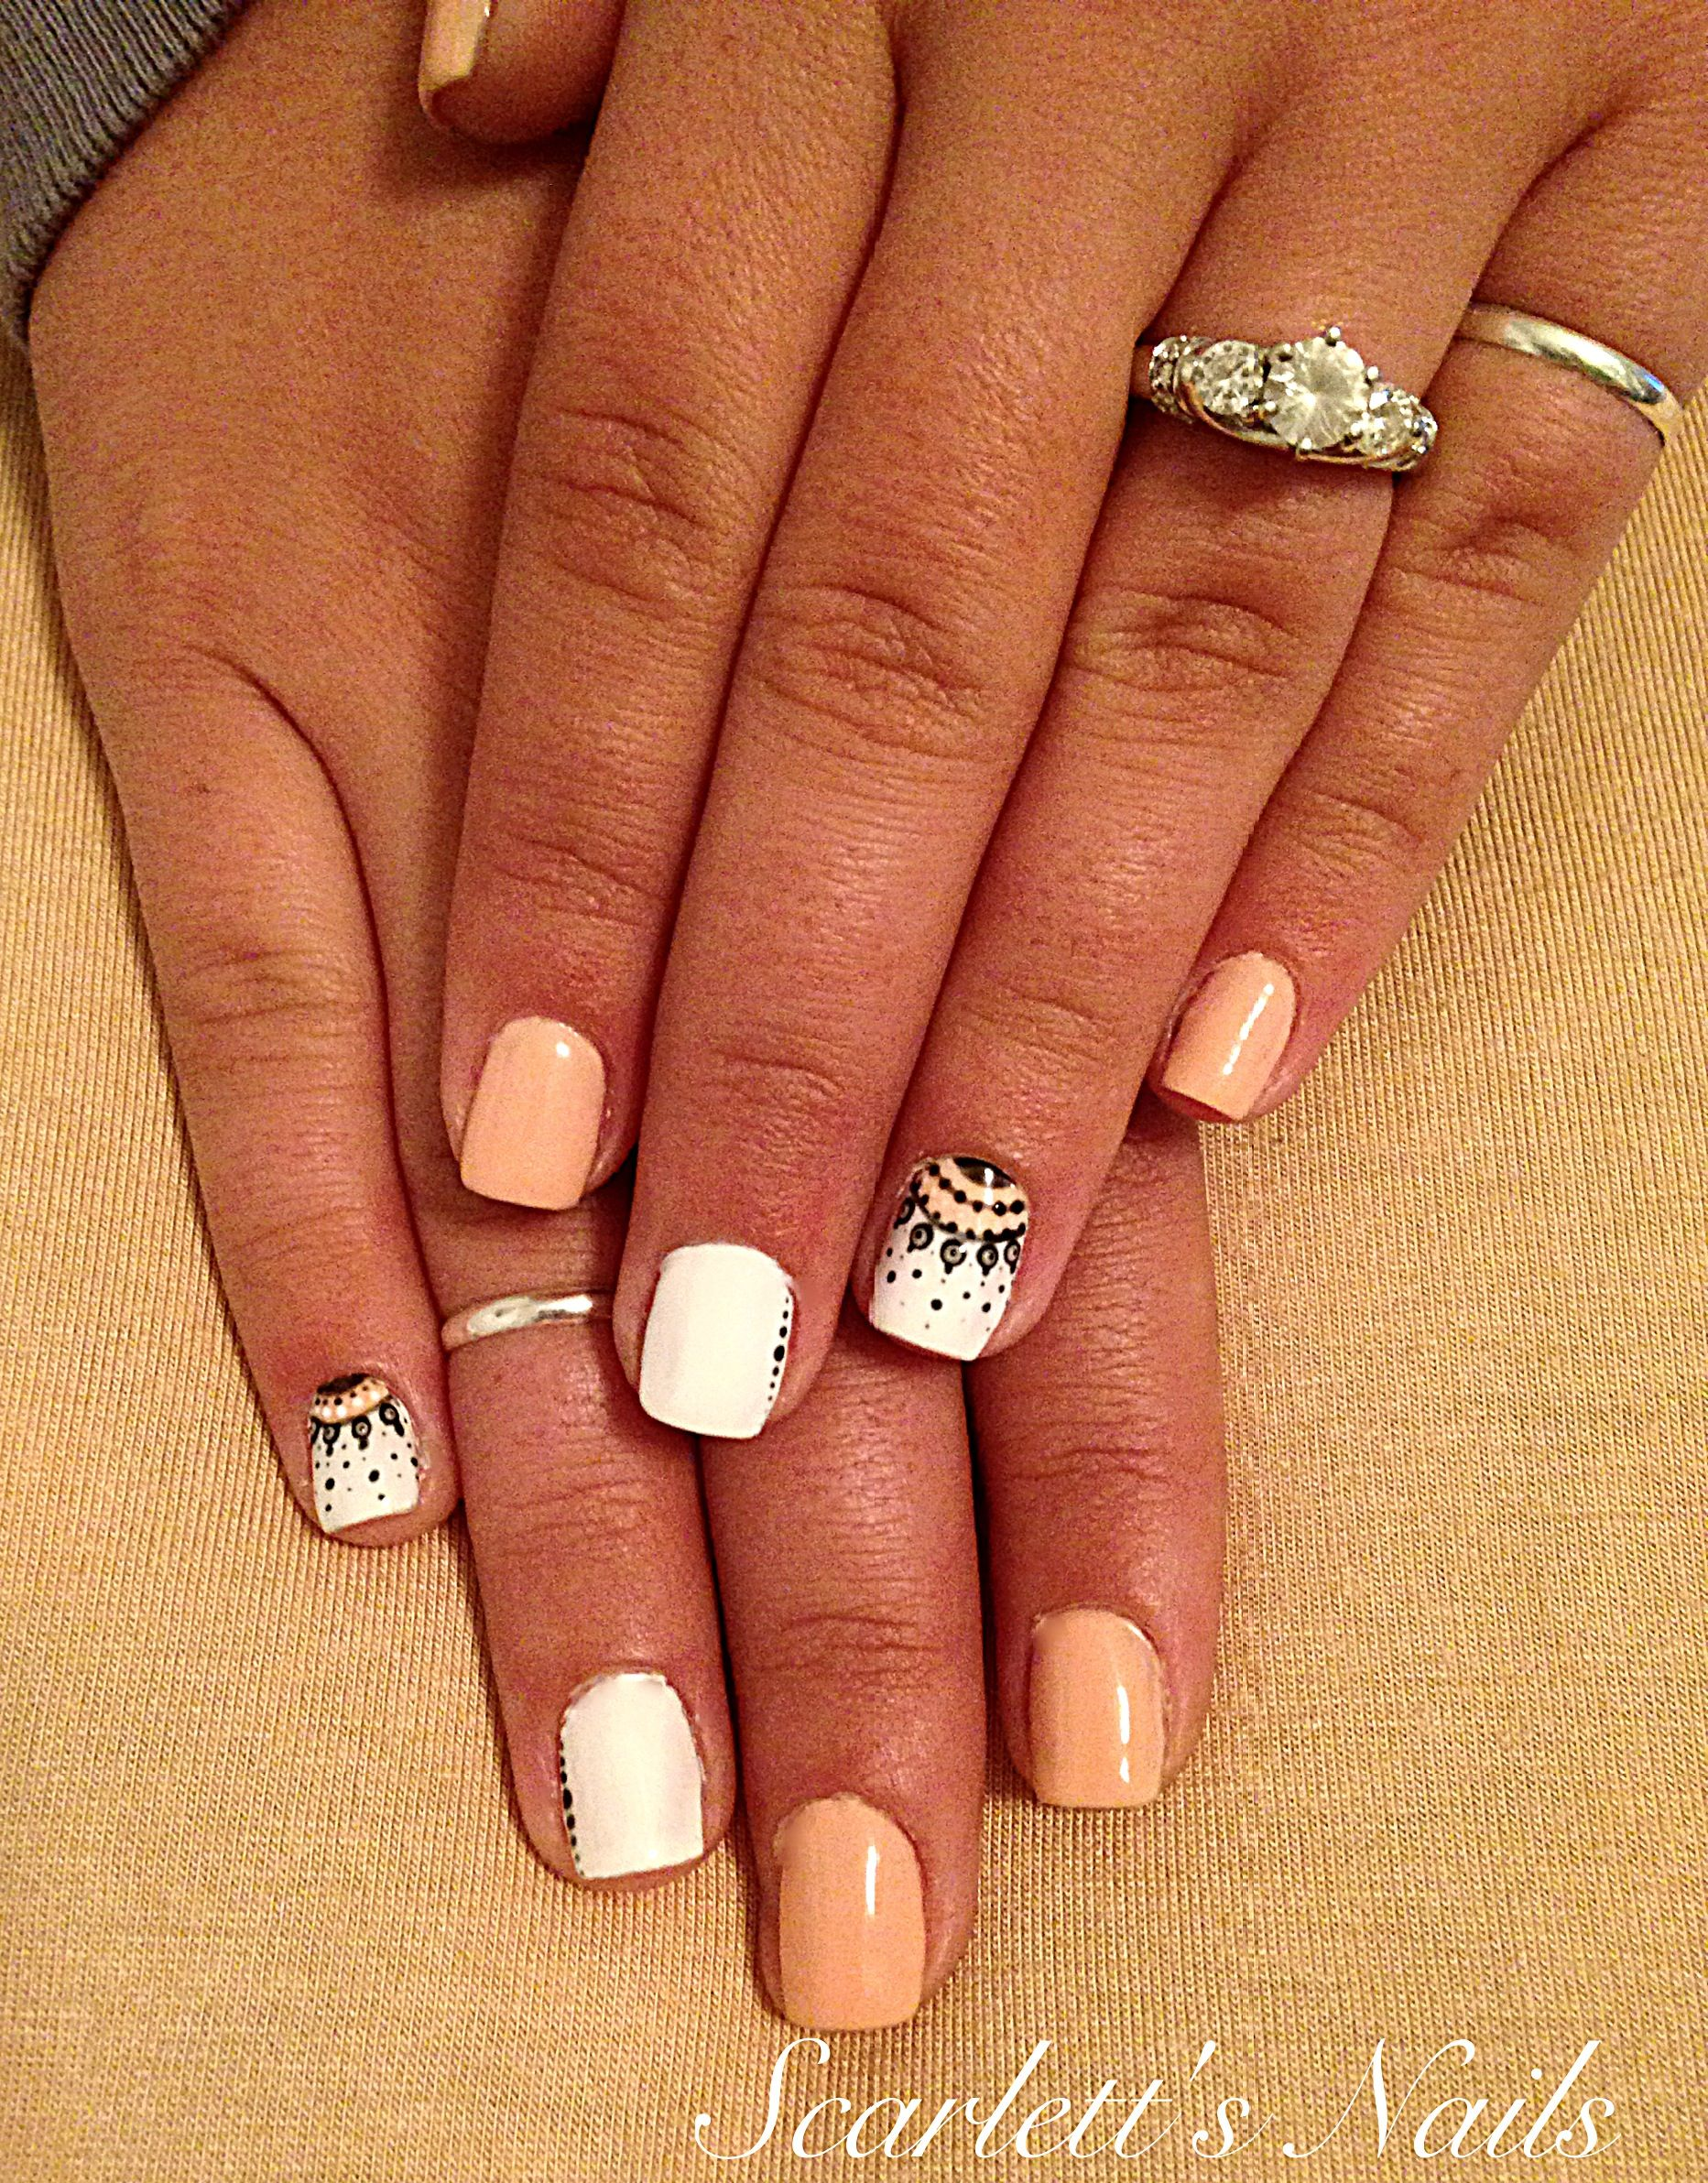 Peach And White Spring Shellac Nails Ideas To Practice Pinterest